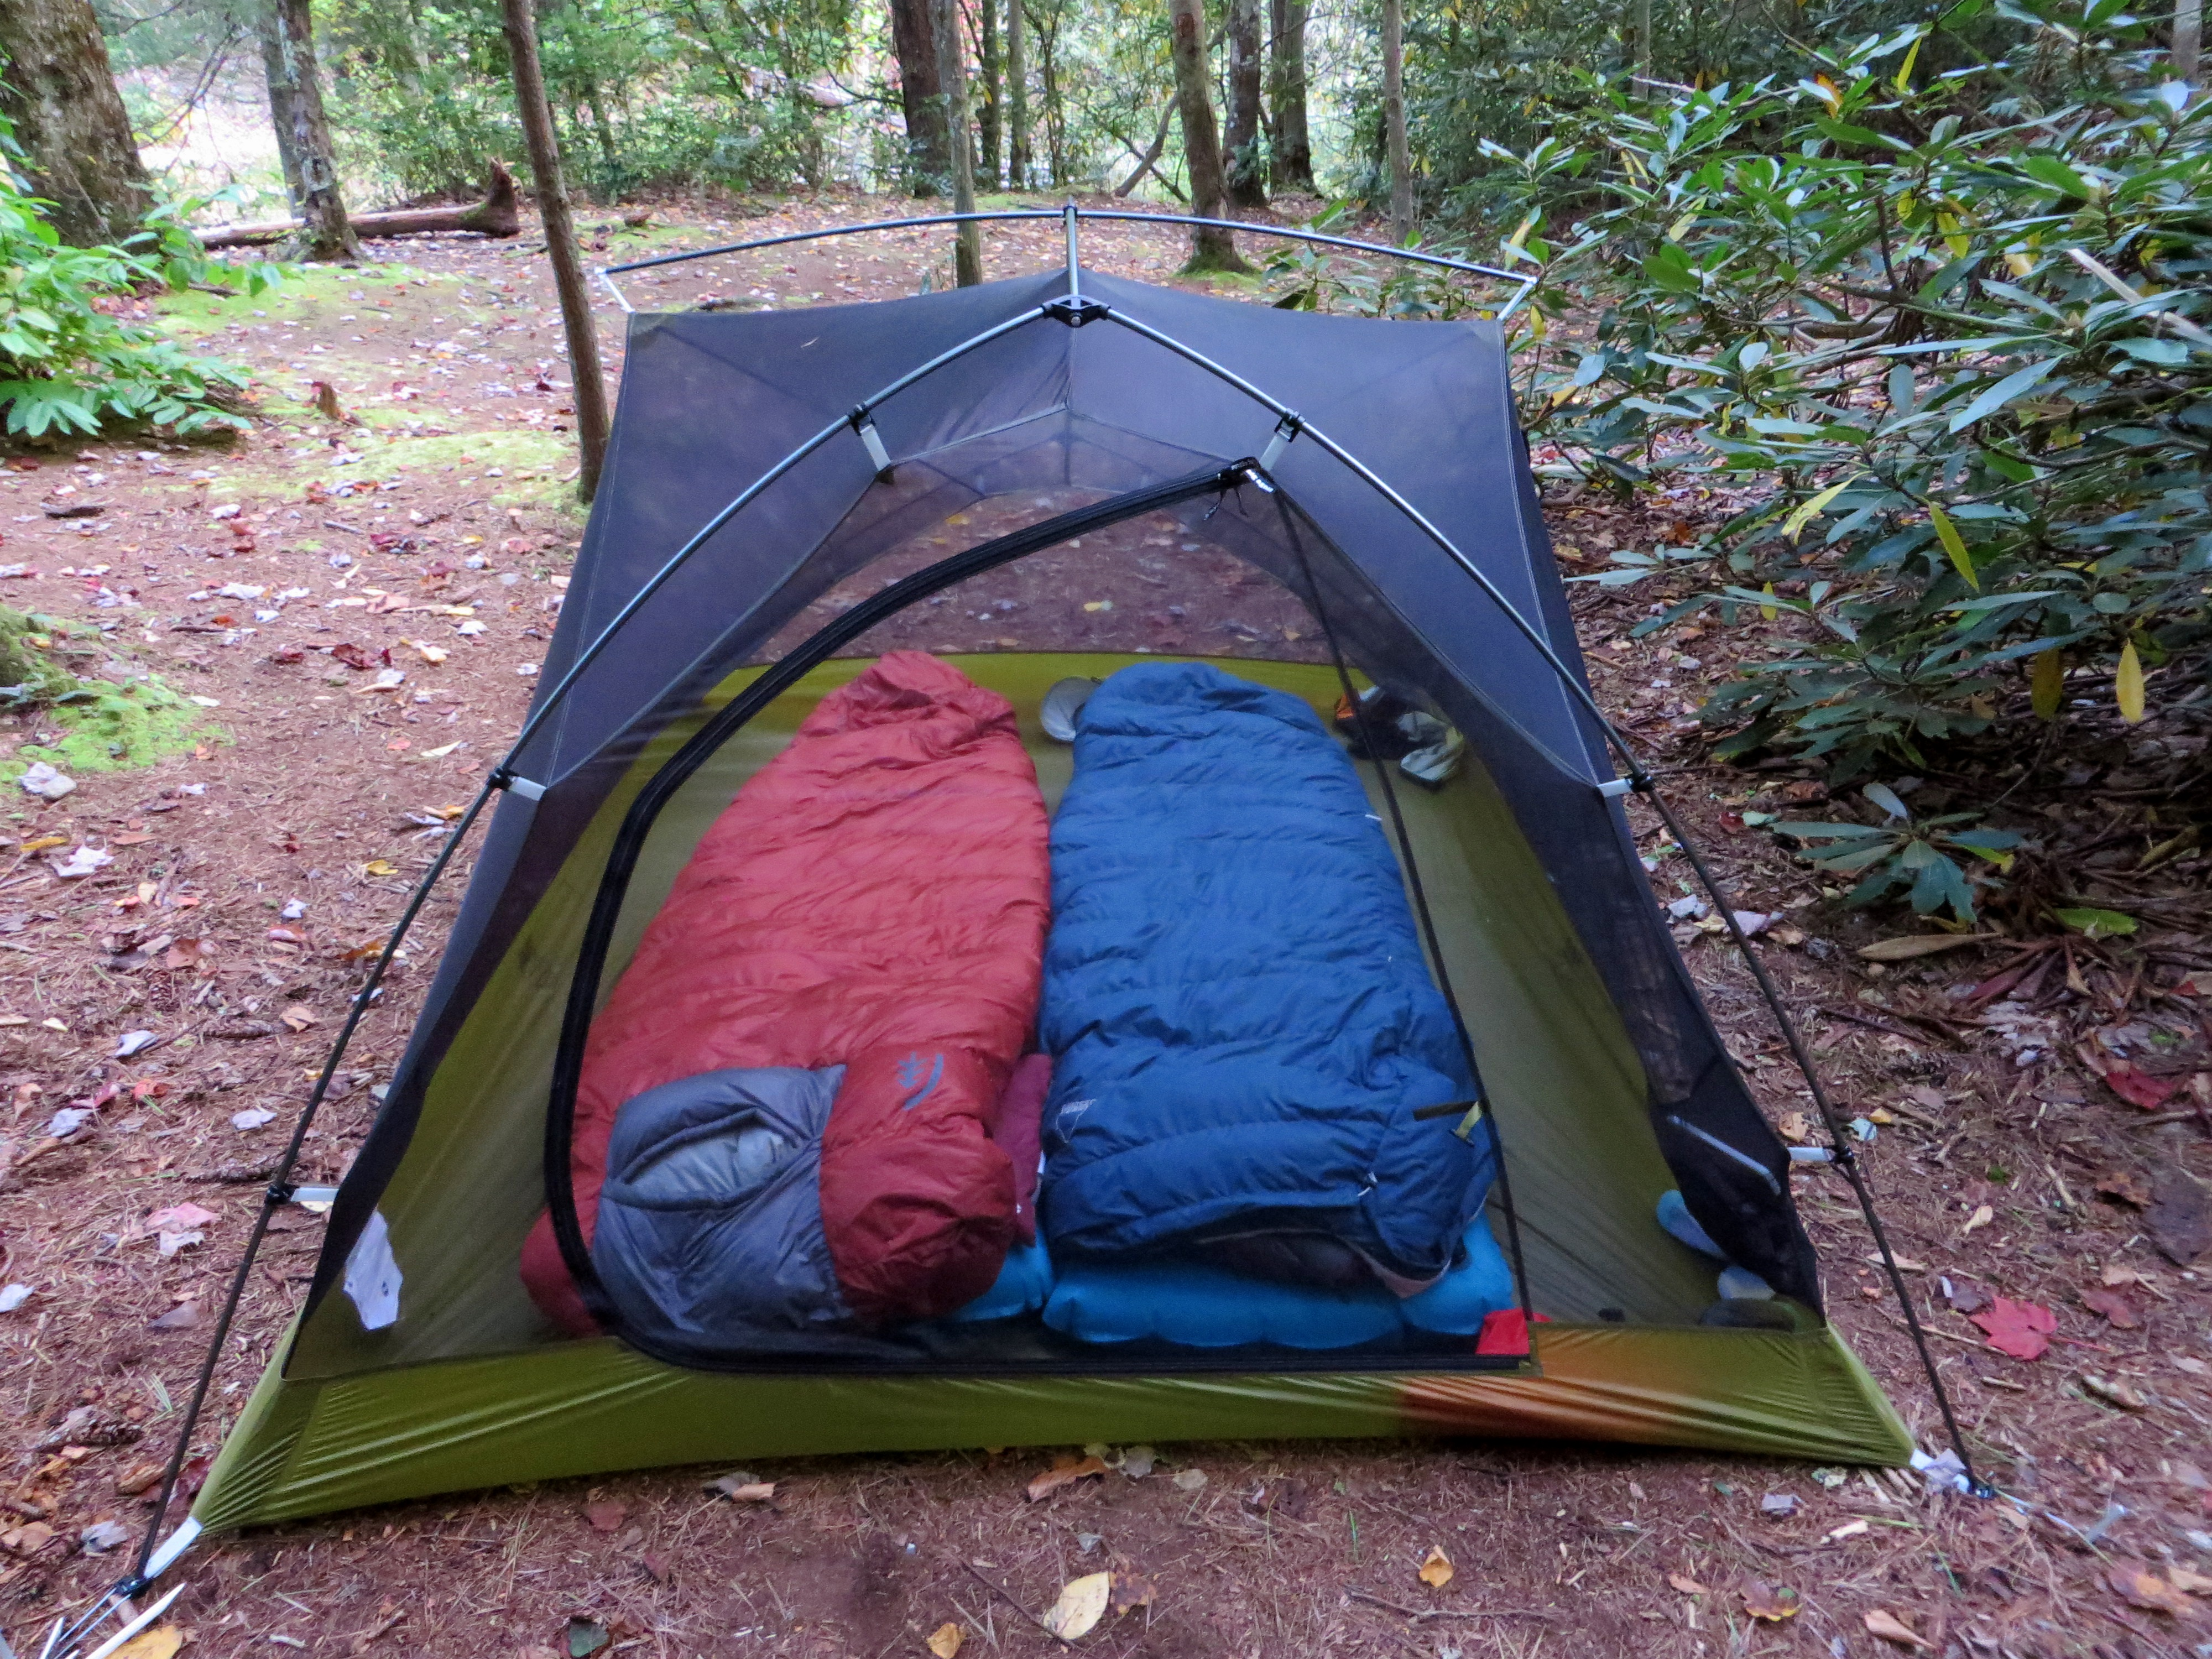 Big AGnes Seedhouse SL3 backpacking tent & 3 season vs 4 season tent. Whatu0027s the difference? | TreeLineBackpacker